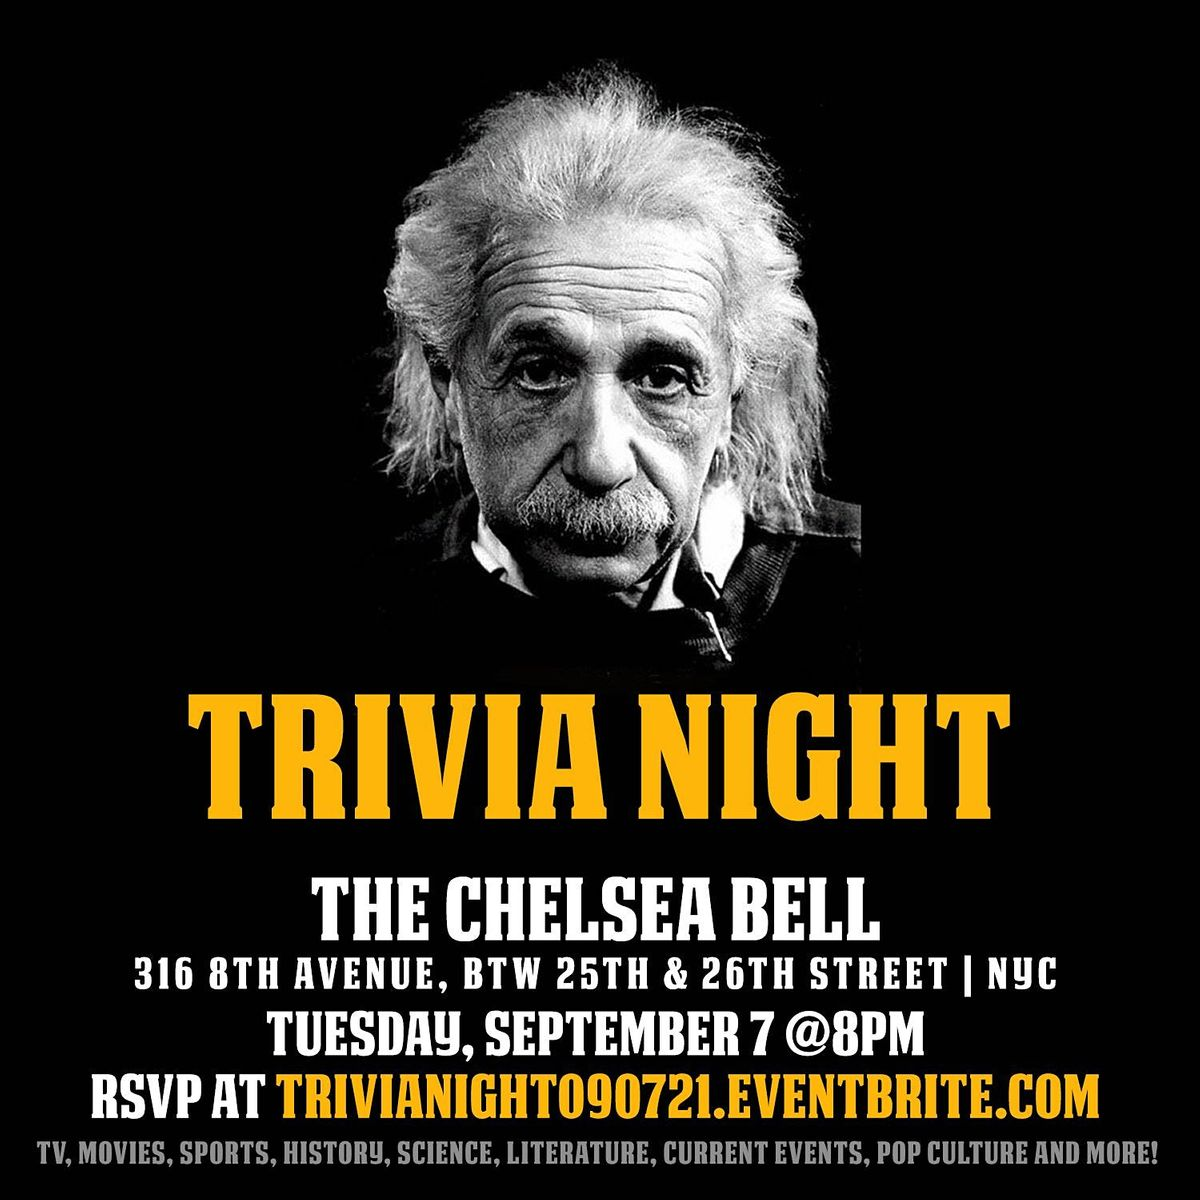 General Trivia Night, 7 September | Event in New York | AllEvents.in